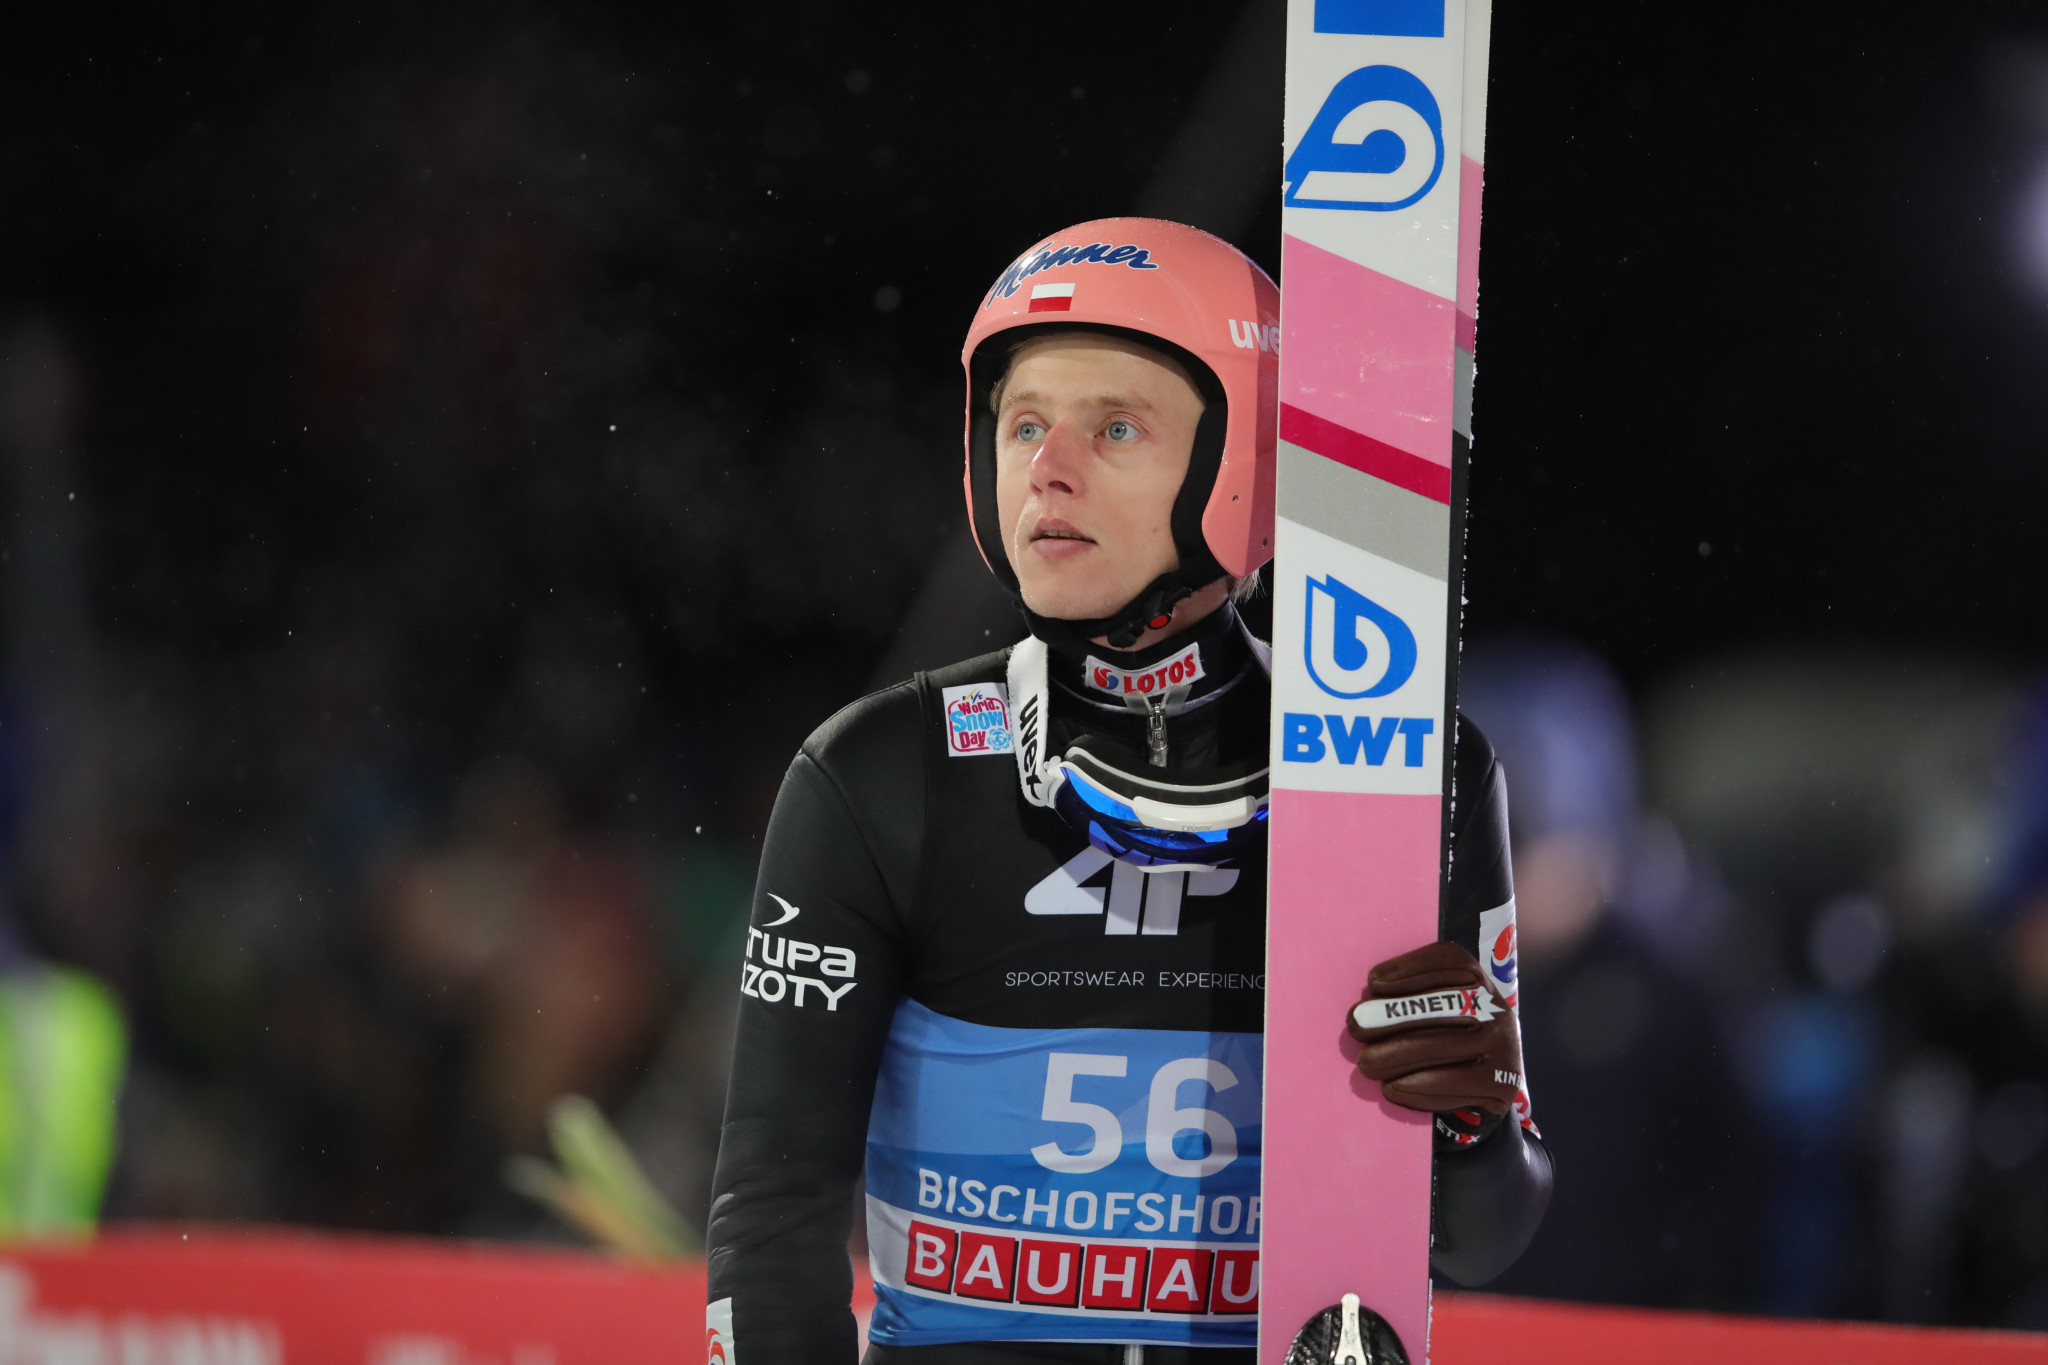 Kobayashi streak ends as Kubacki wins FIS Ski Jumping World Cup in Val di Fiemme